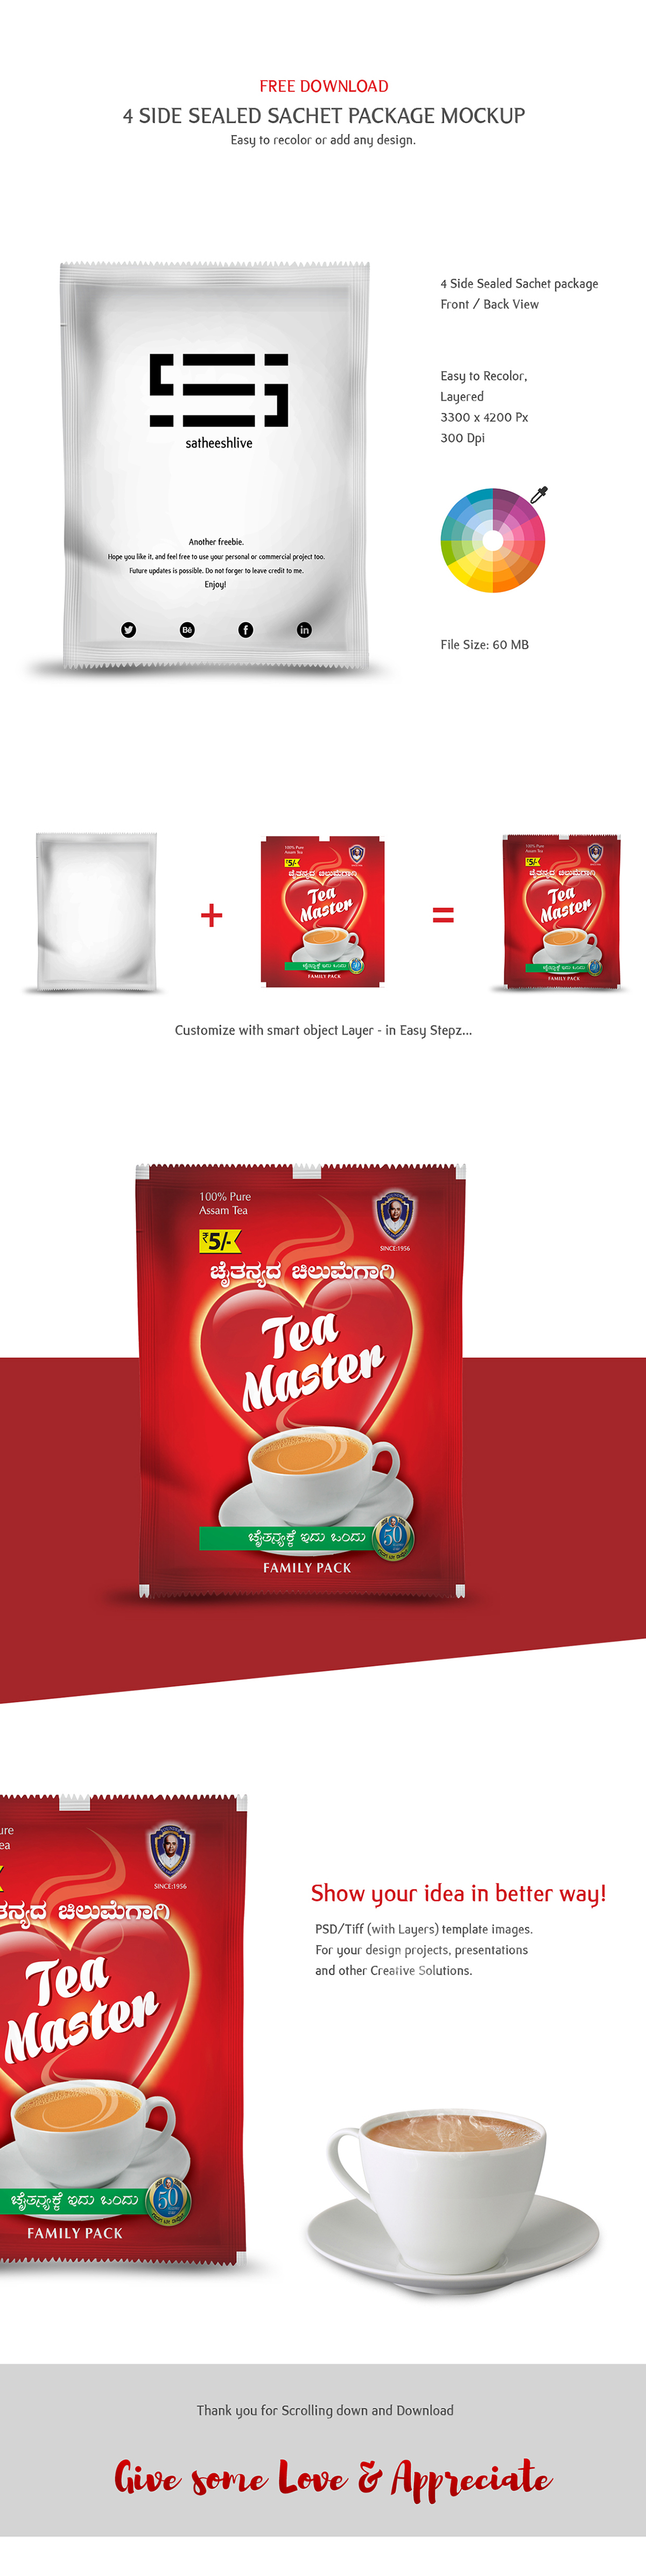 Download Free Individual Wrapped Sachet Psd Mockup Free Tea Coffee Sachet